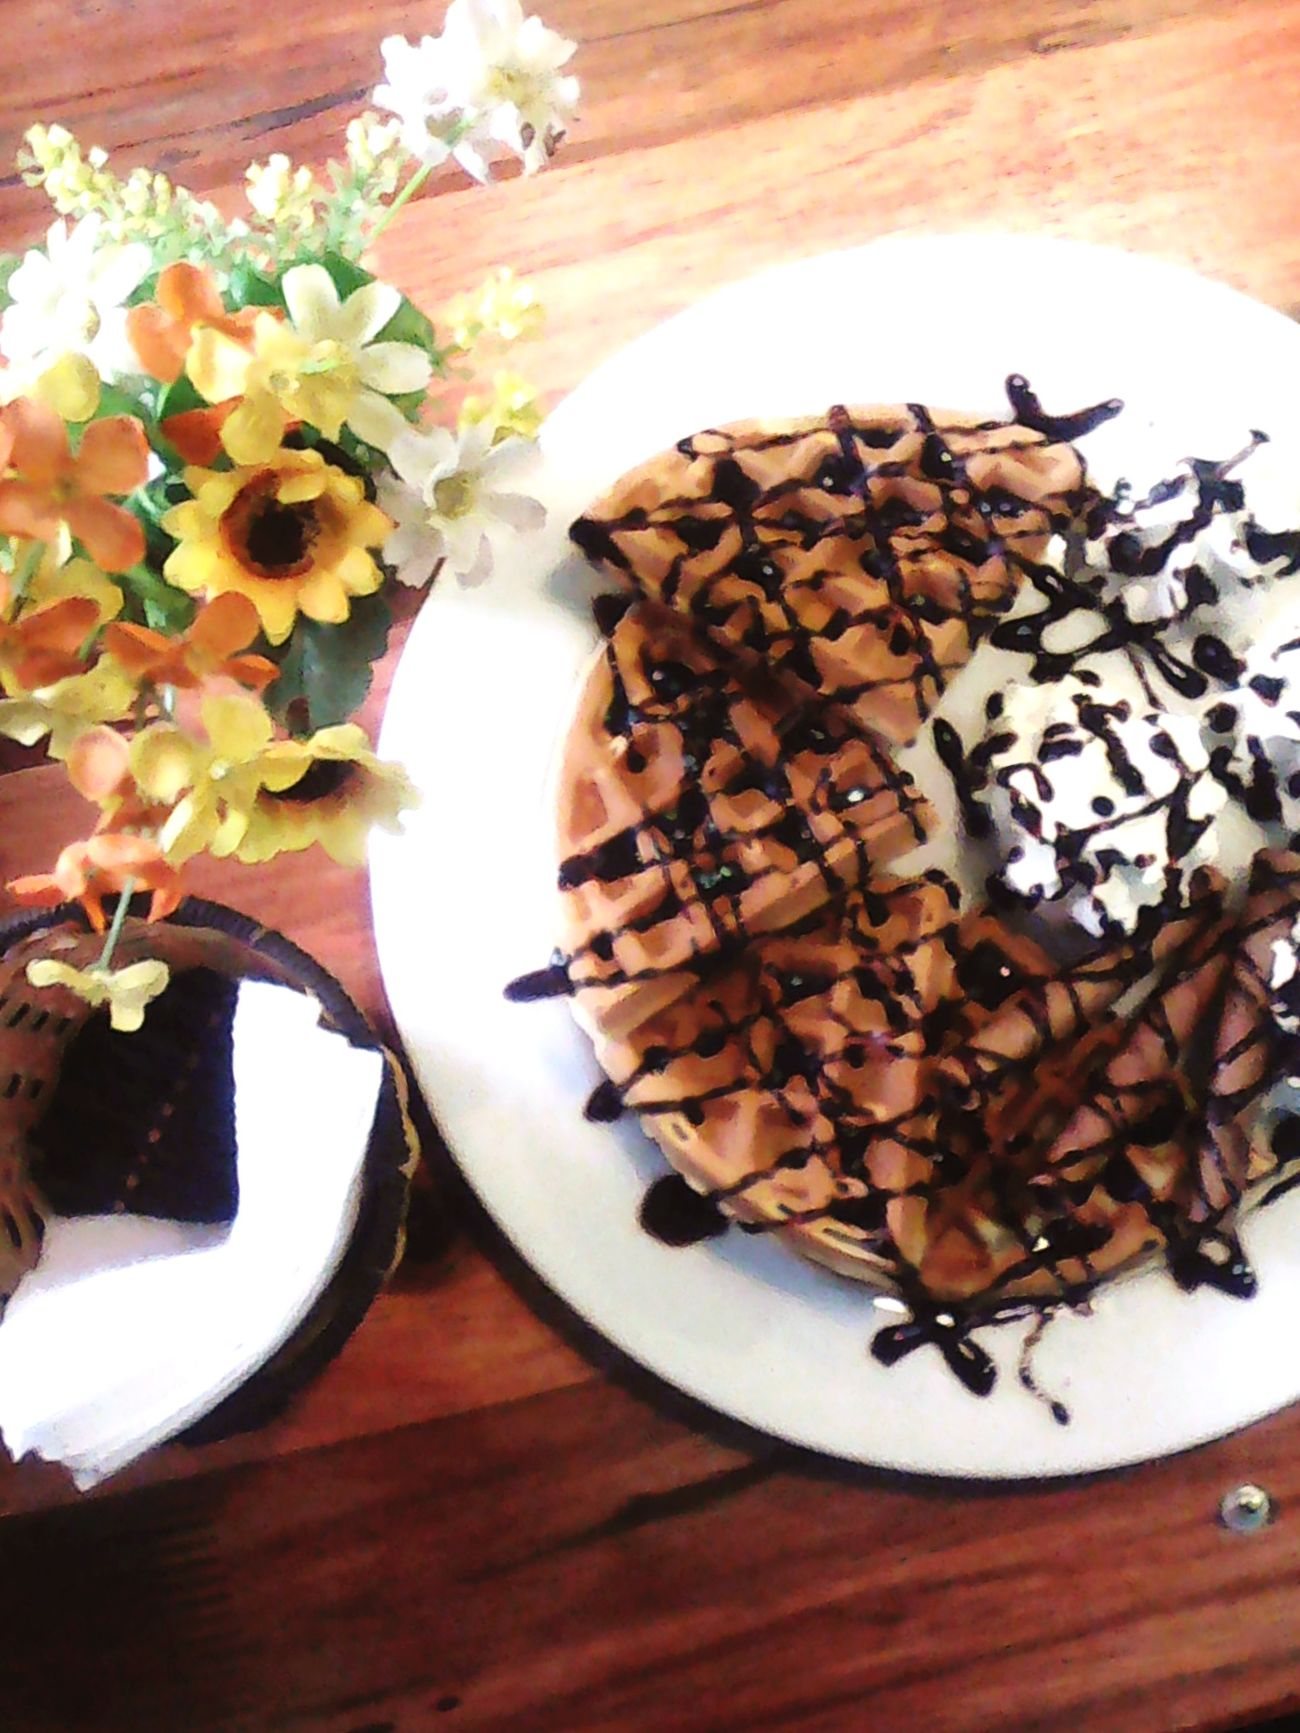 Foodporn Waffle Coffee Shop Relaxing Time Chocolate Cream Goodtime Coffee Lonely Hungry